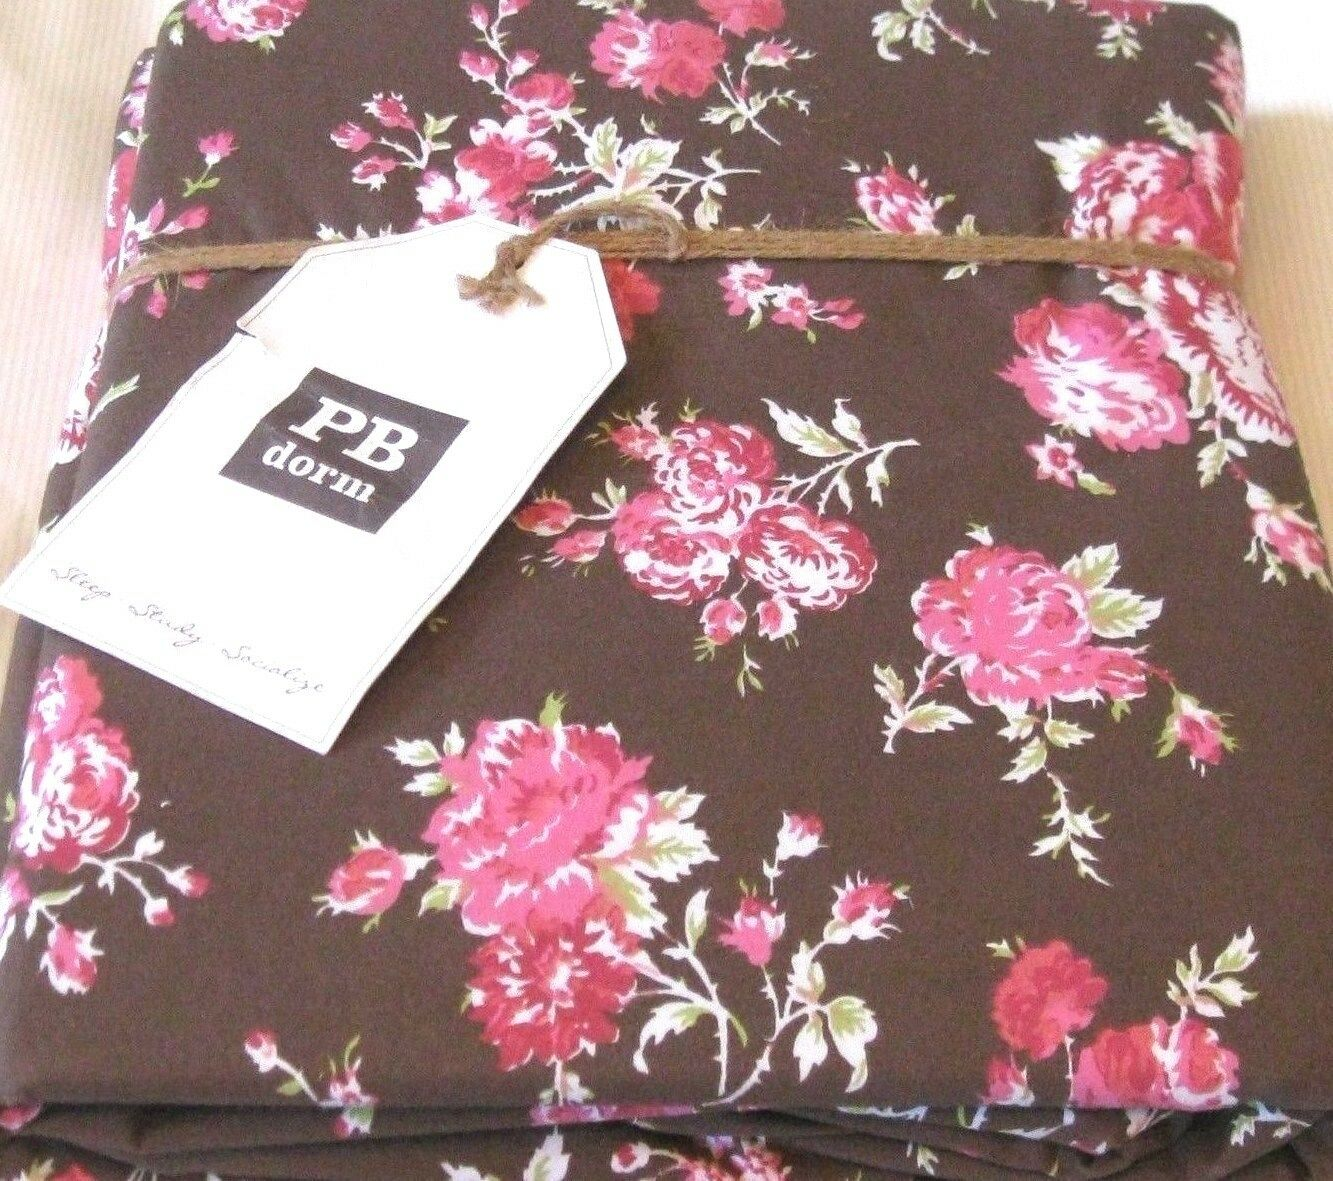 Pottery Barn Dorm Twin Duvet Cover Sunwashed Floral Pink pinks Flowers Brown NIP